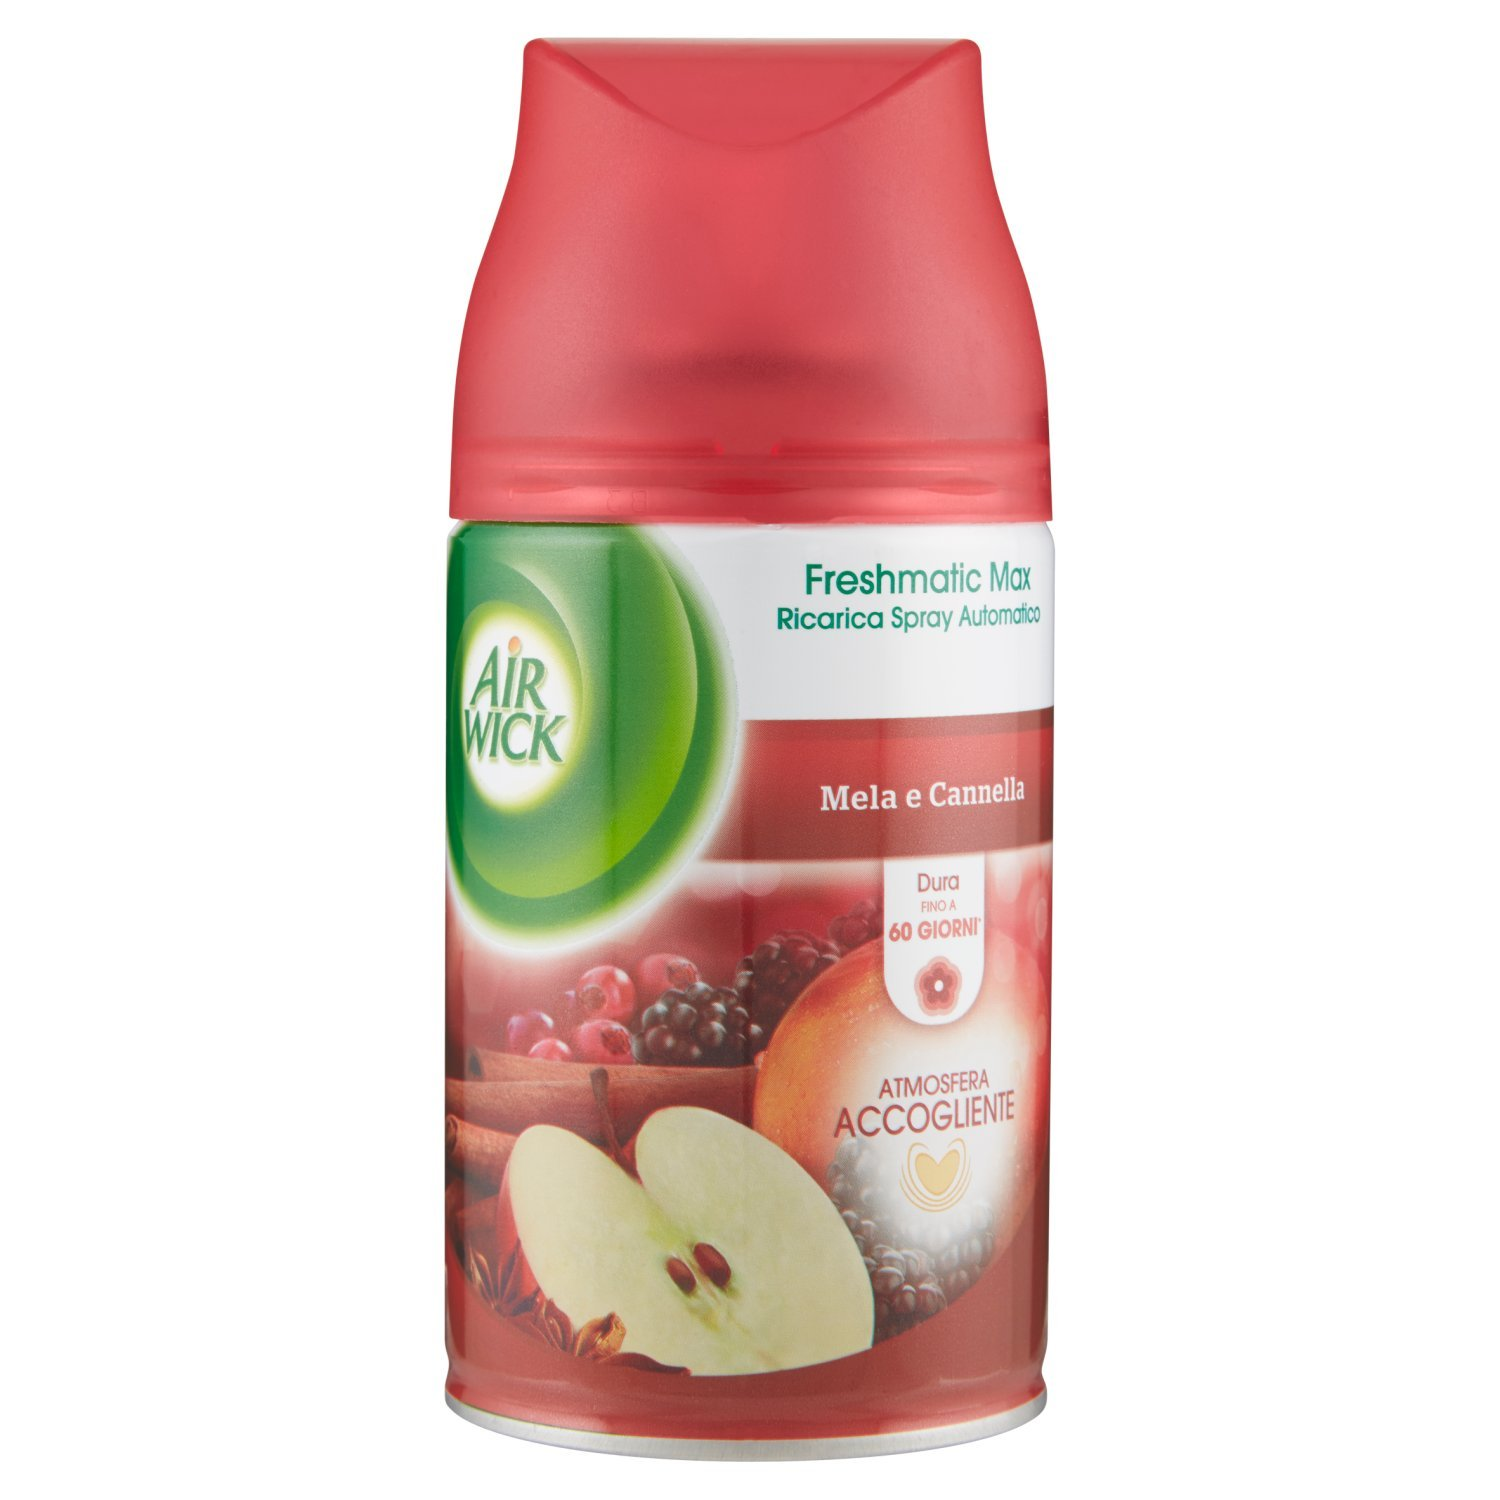 Air Wick Freshmatic Ricarica Spray Automatico, Mela e Cannella, 2 Confezioni da 250 ml Reckitt Benckiser IT